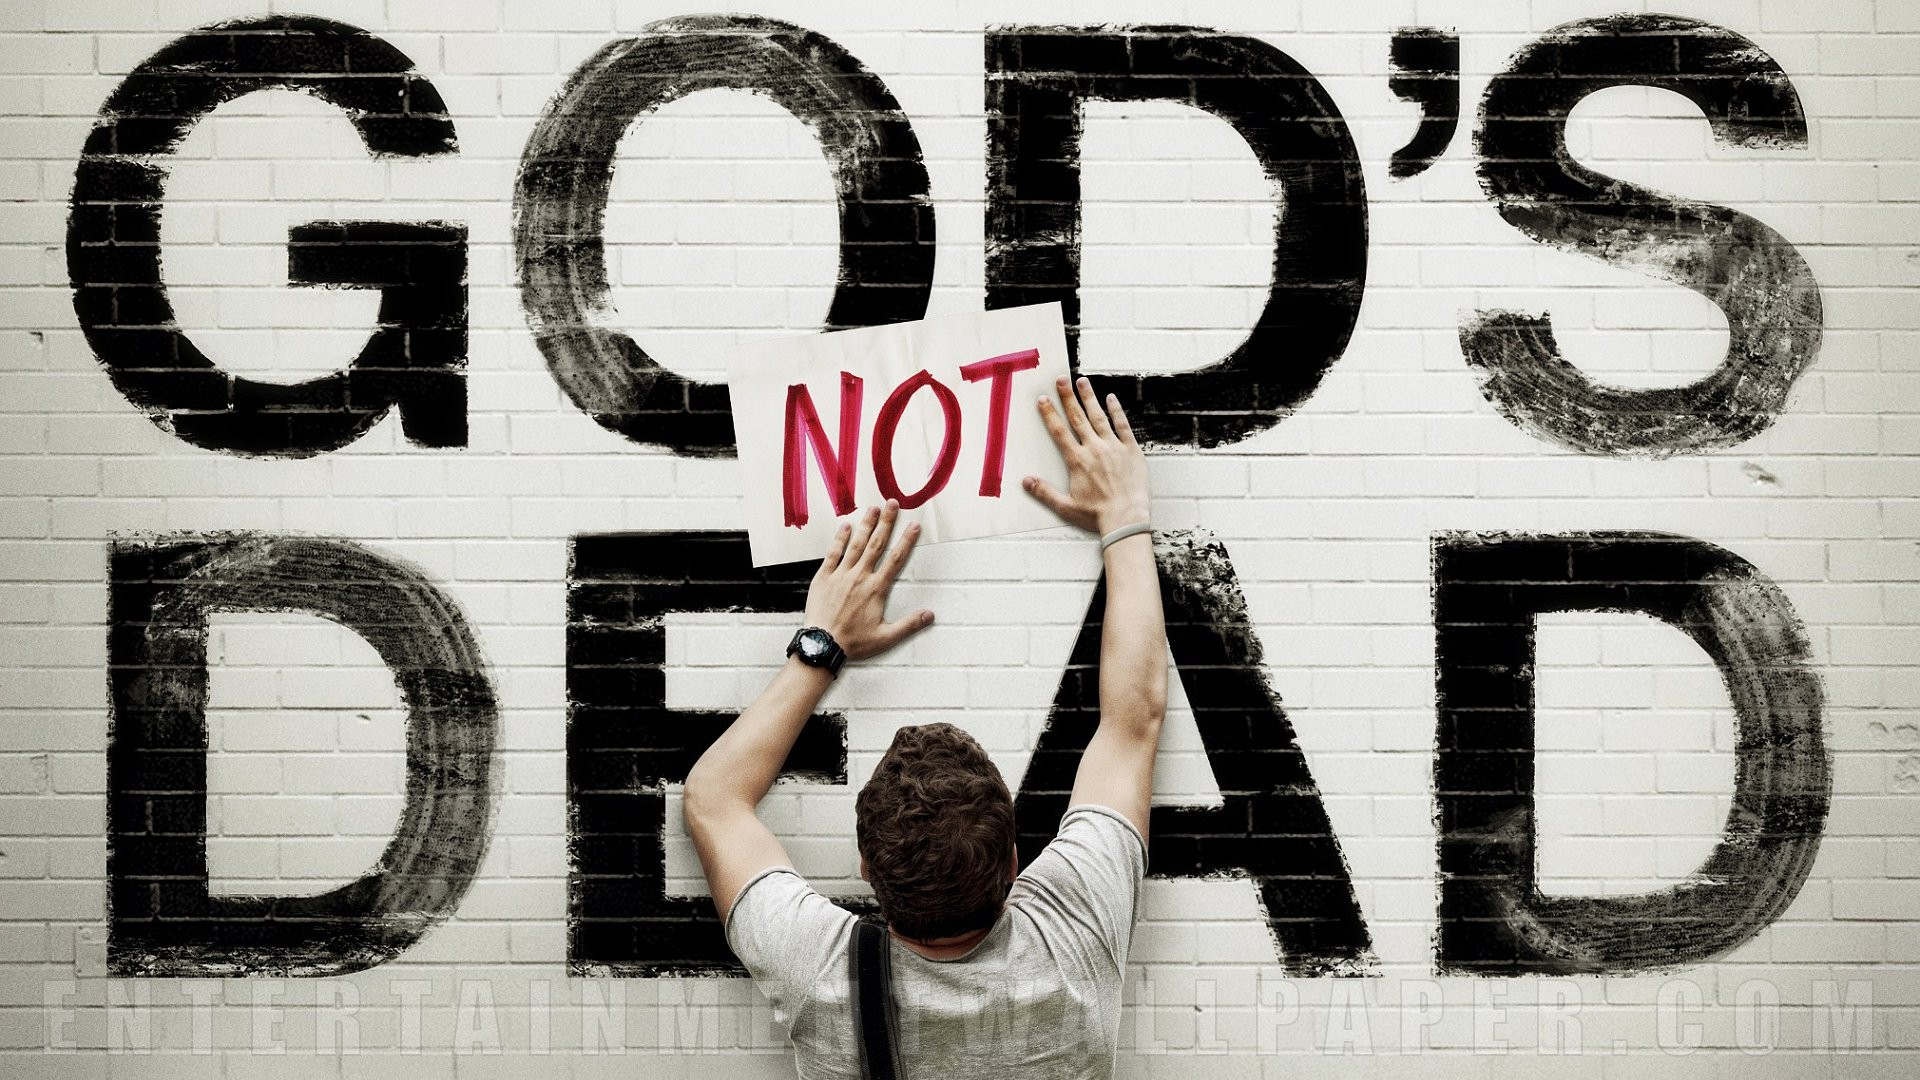 1920x1080 God's Not Dead Wallpaper - Original size, ...